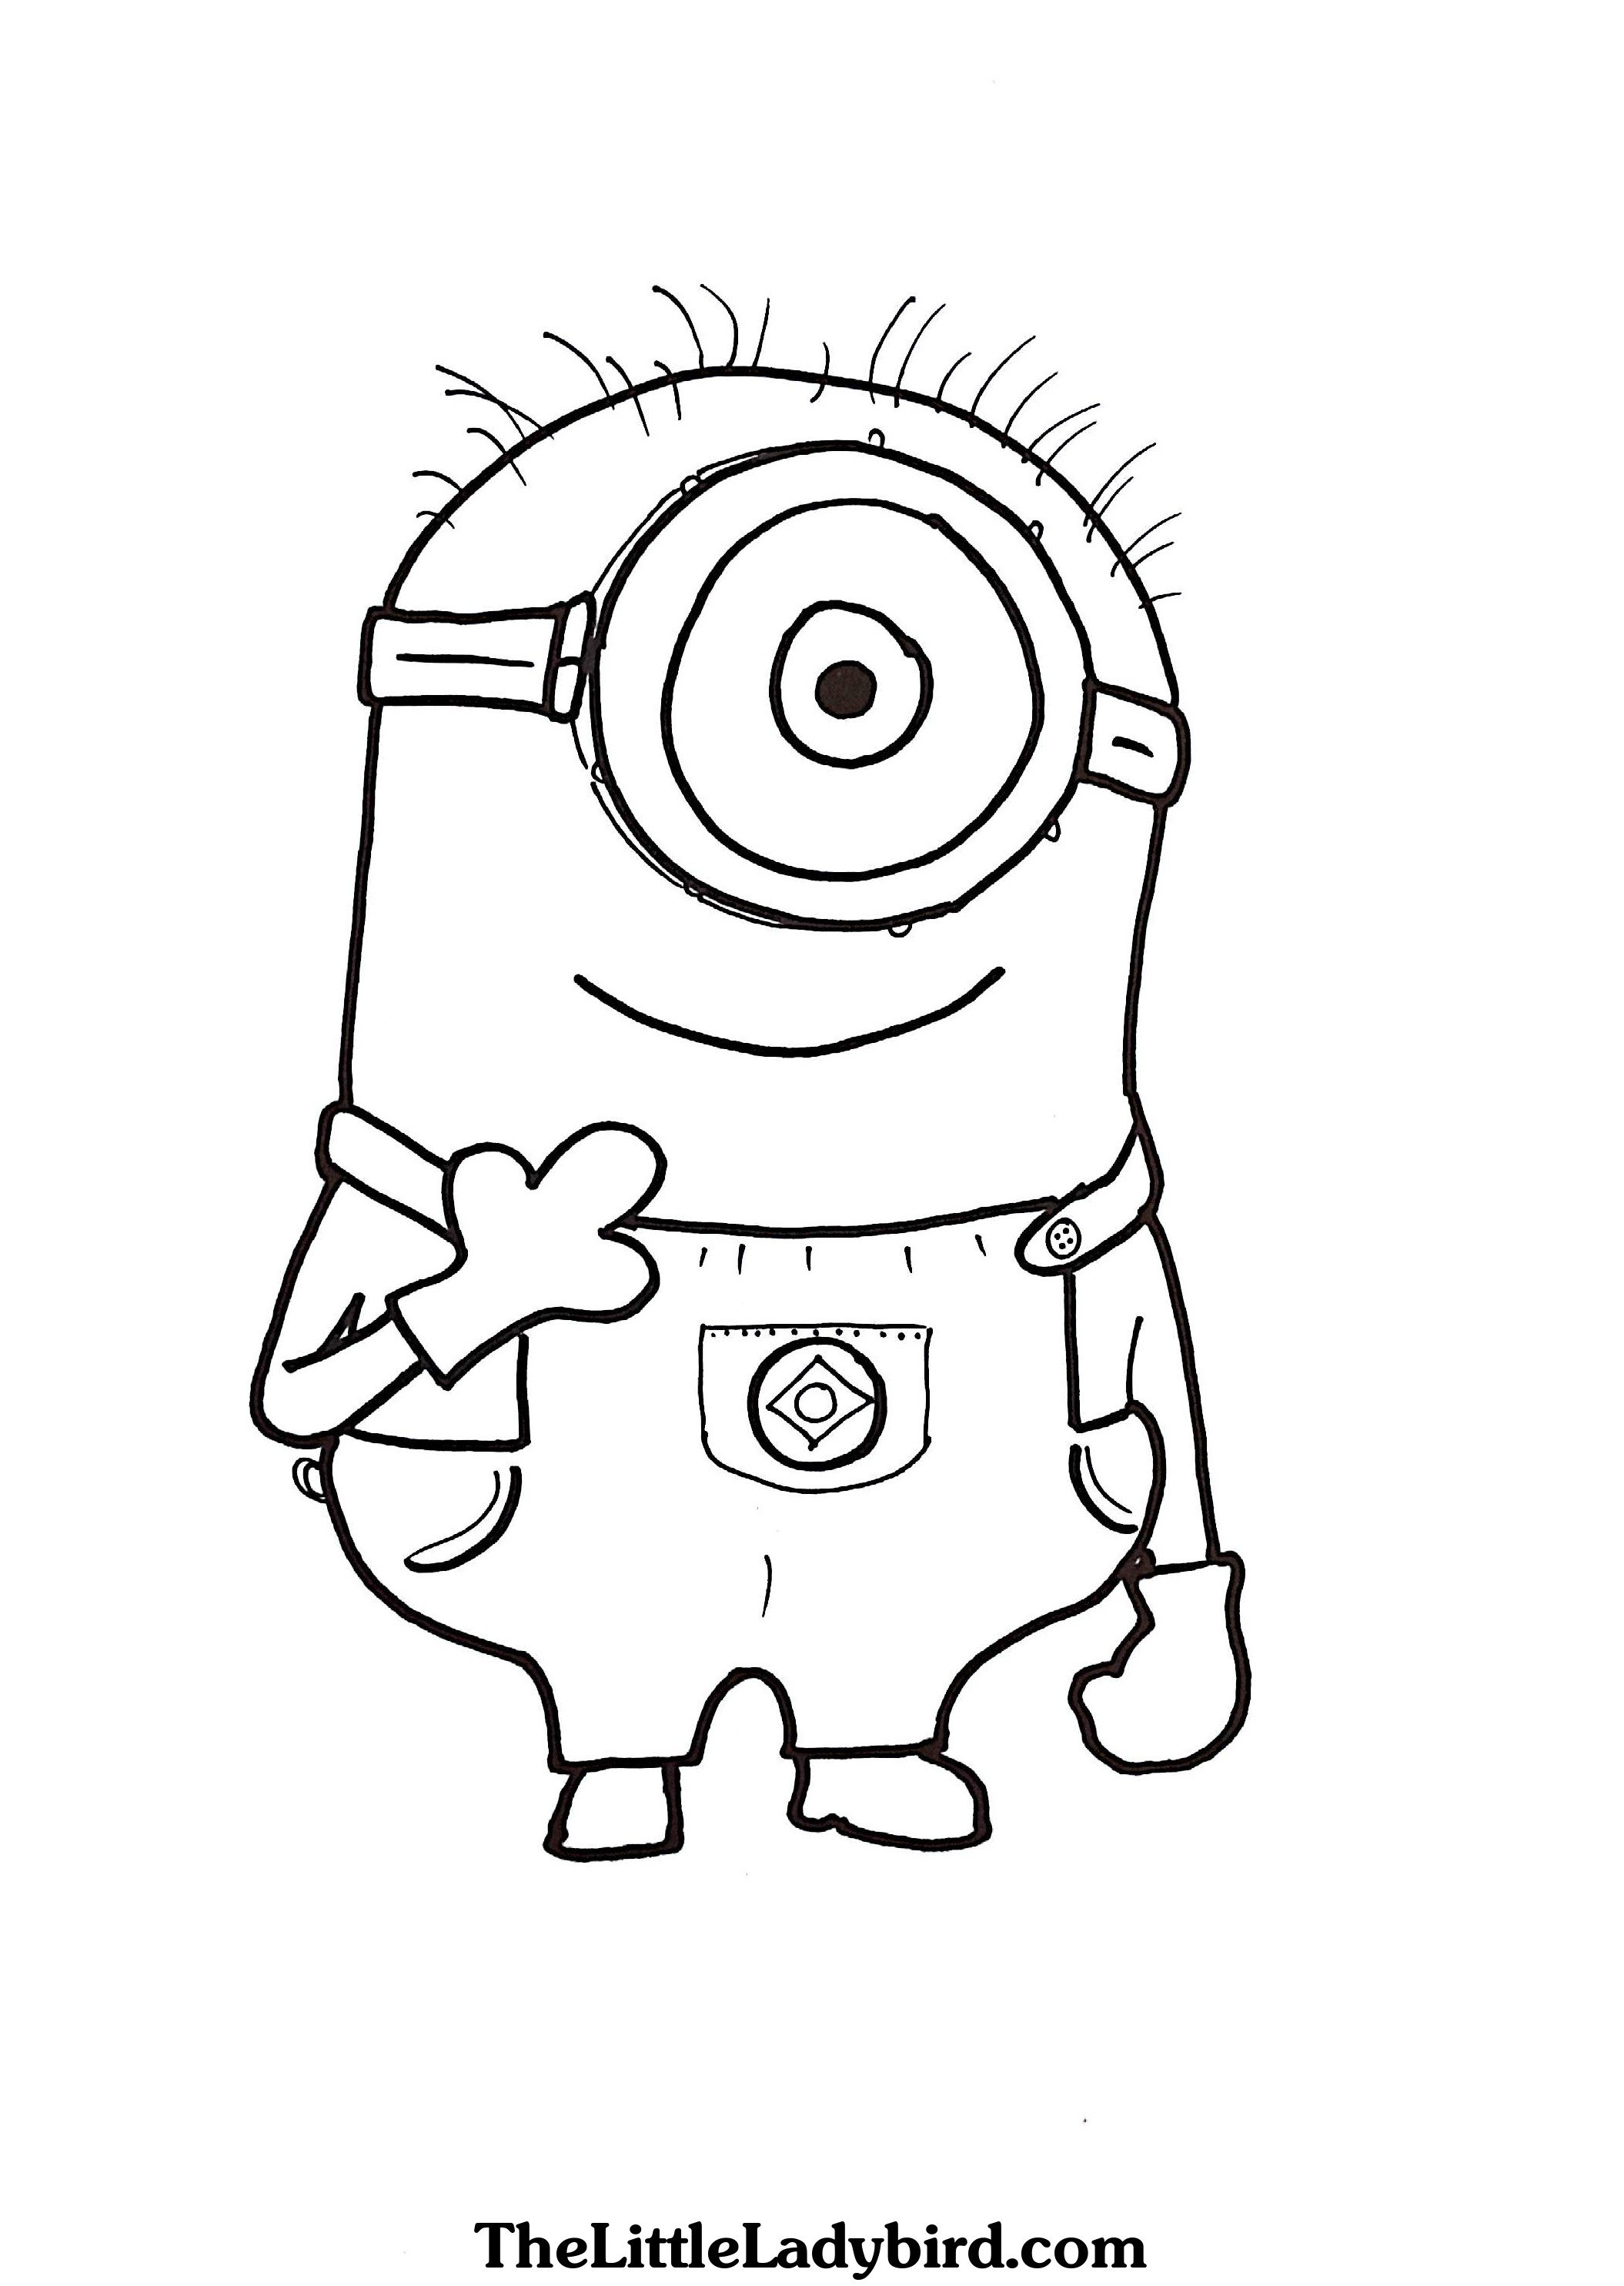 Minion Drawing For Kids At Paintingvalley